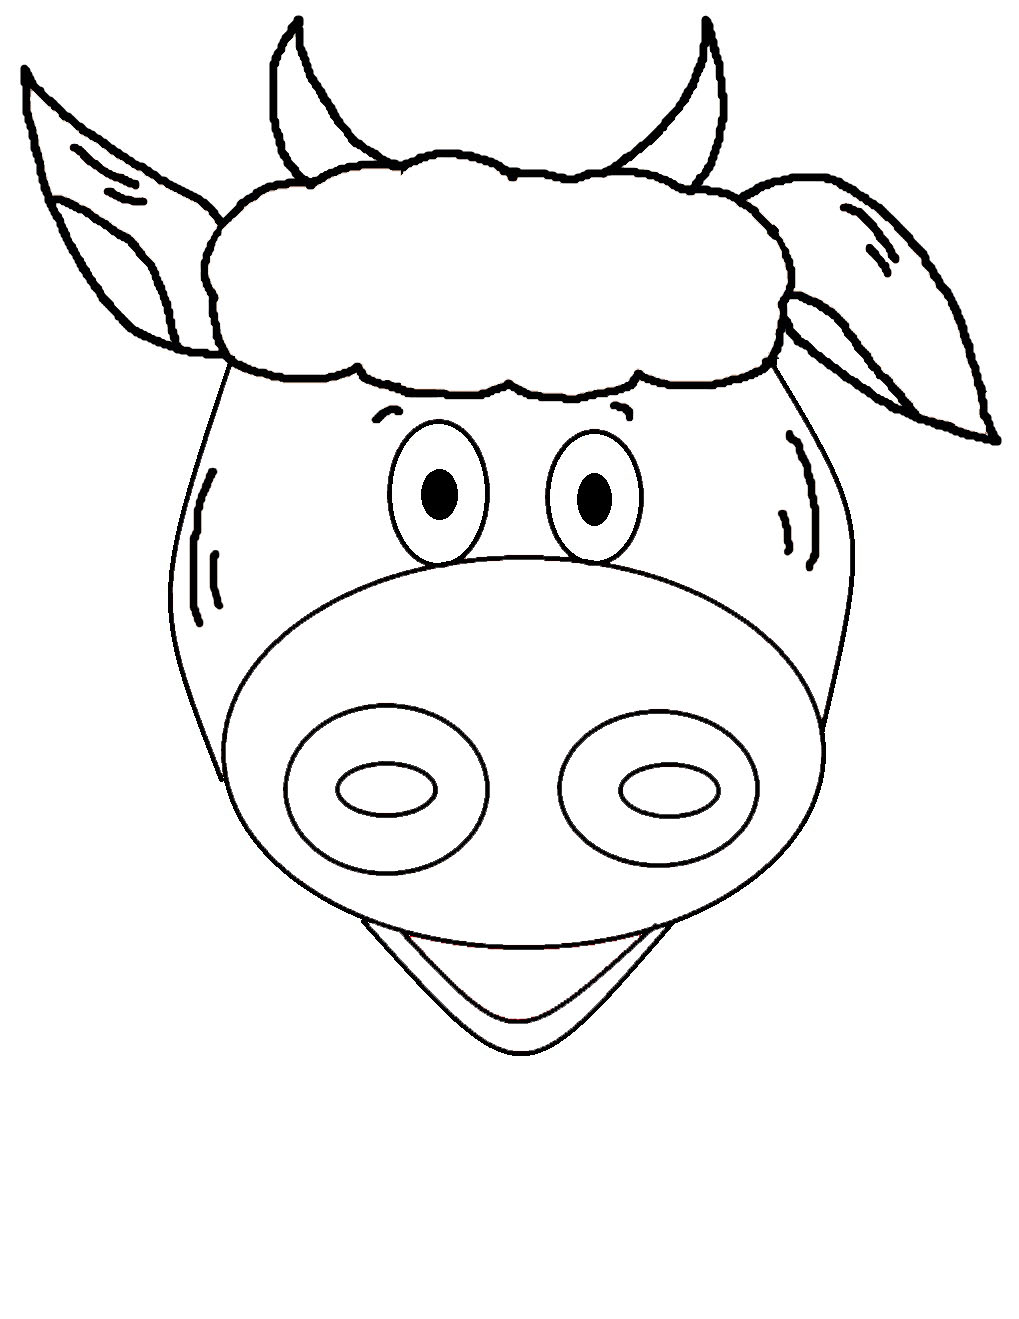 1019x1319 Adult Cow Face Drawing Cow Face Drawing Easy. Cow Face Cartoon